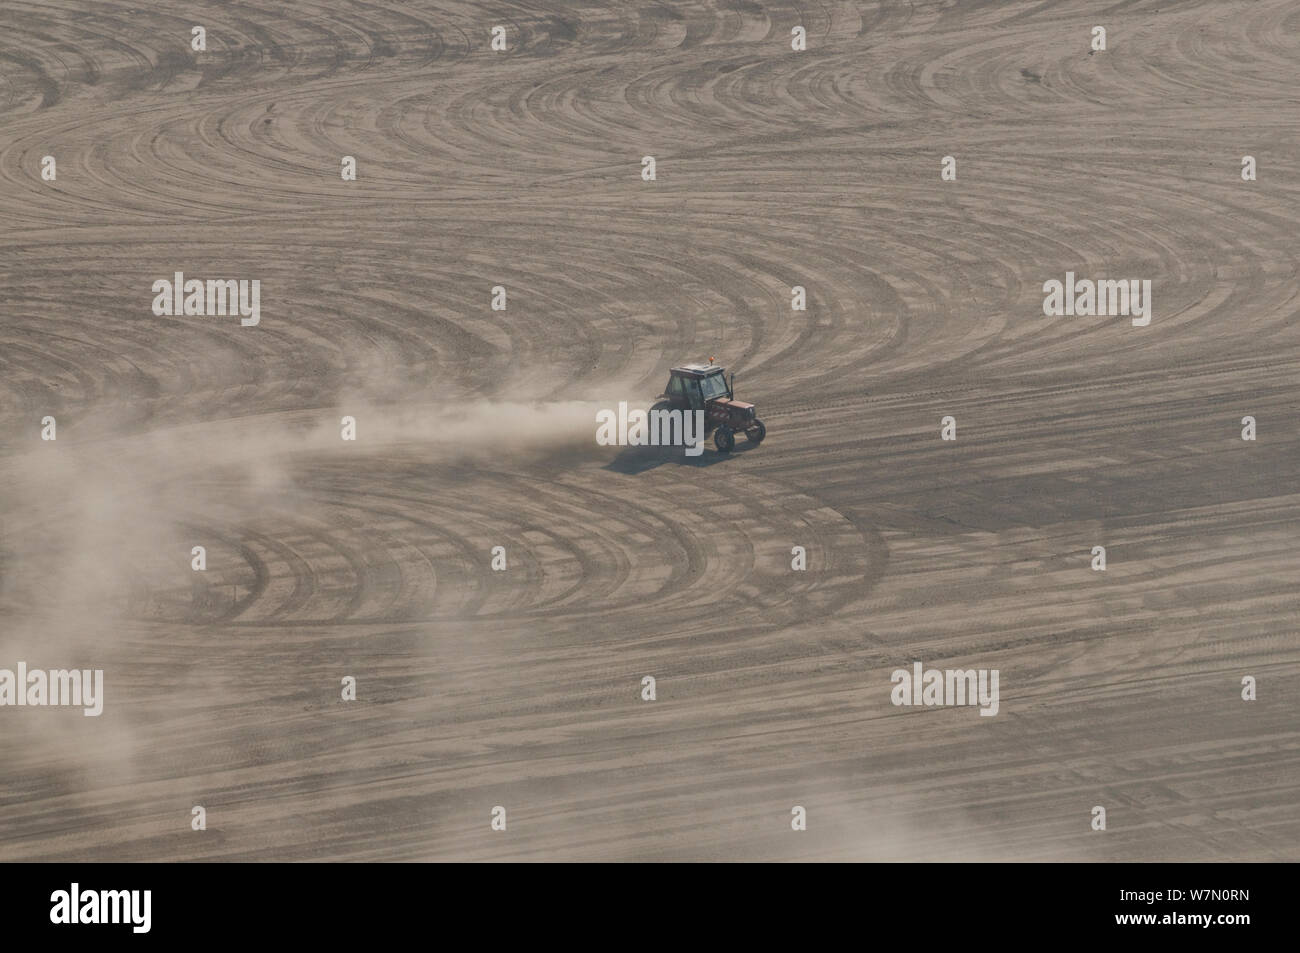 Aerial view of tractor levelling the rice field before sowing a new crop, Camargue, Southern France, September 2009 Stock Photo